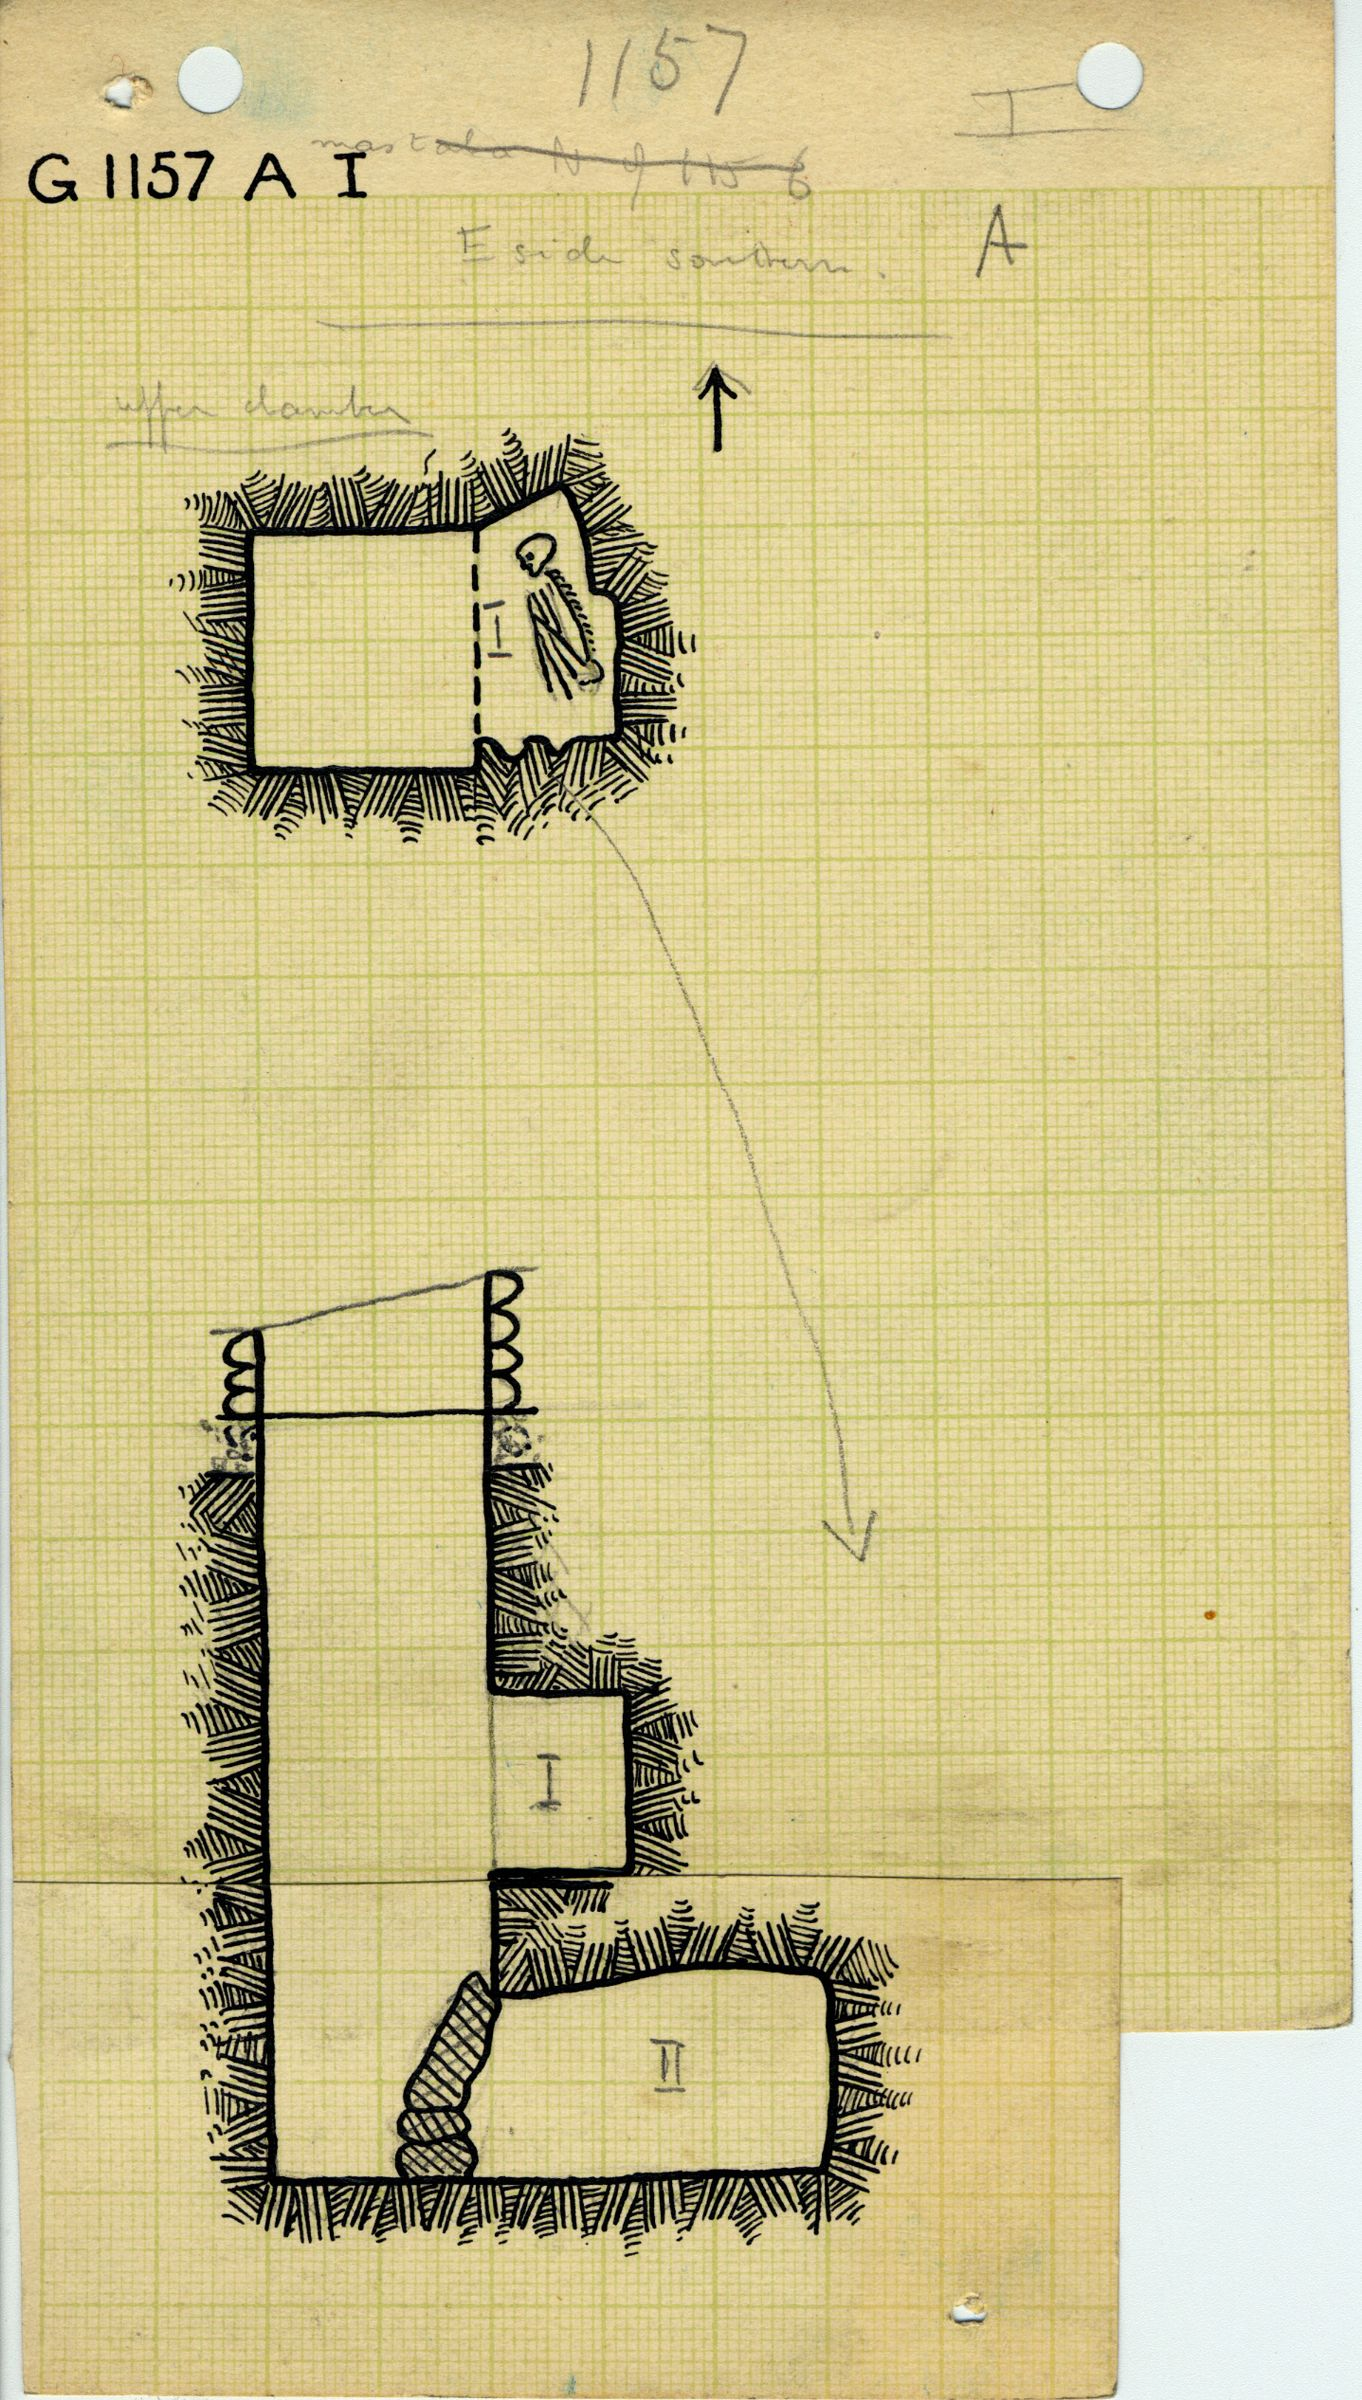 Maps and plans: G 1157, Shaft A (I)